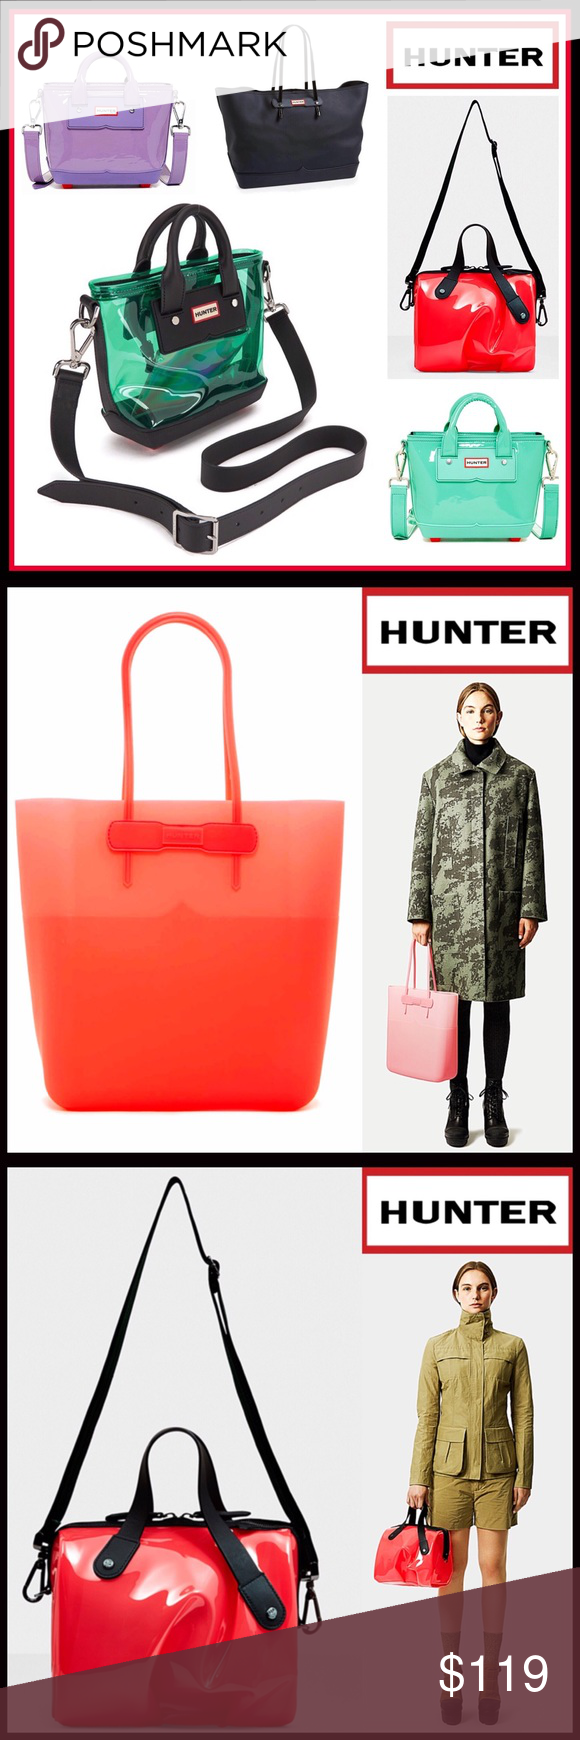 1407f26c022 HUNTER ORIGINAL AMAZING BAGS AND TOTES HUNTER ORIGINAL BAGS AND TOTES- Take  a look in